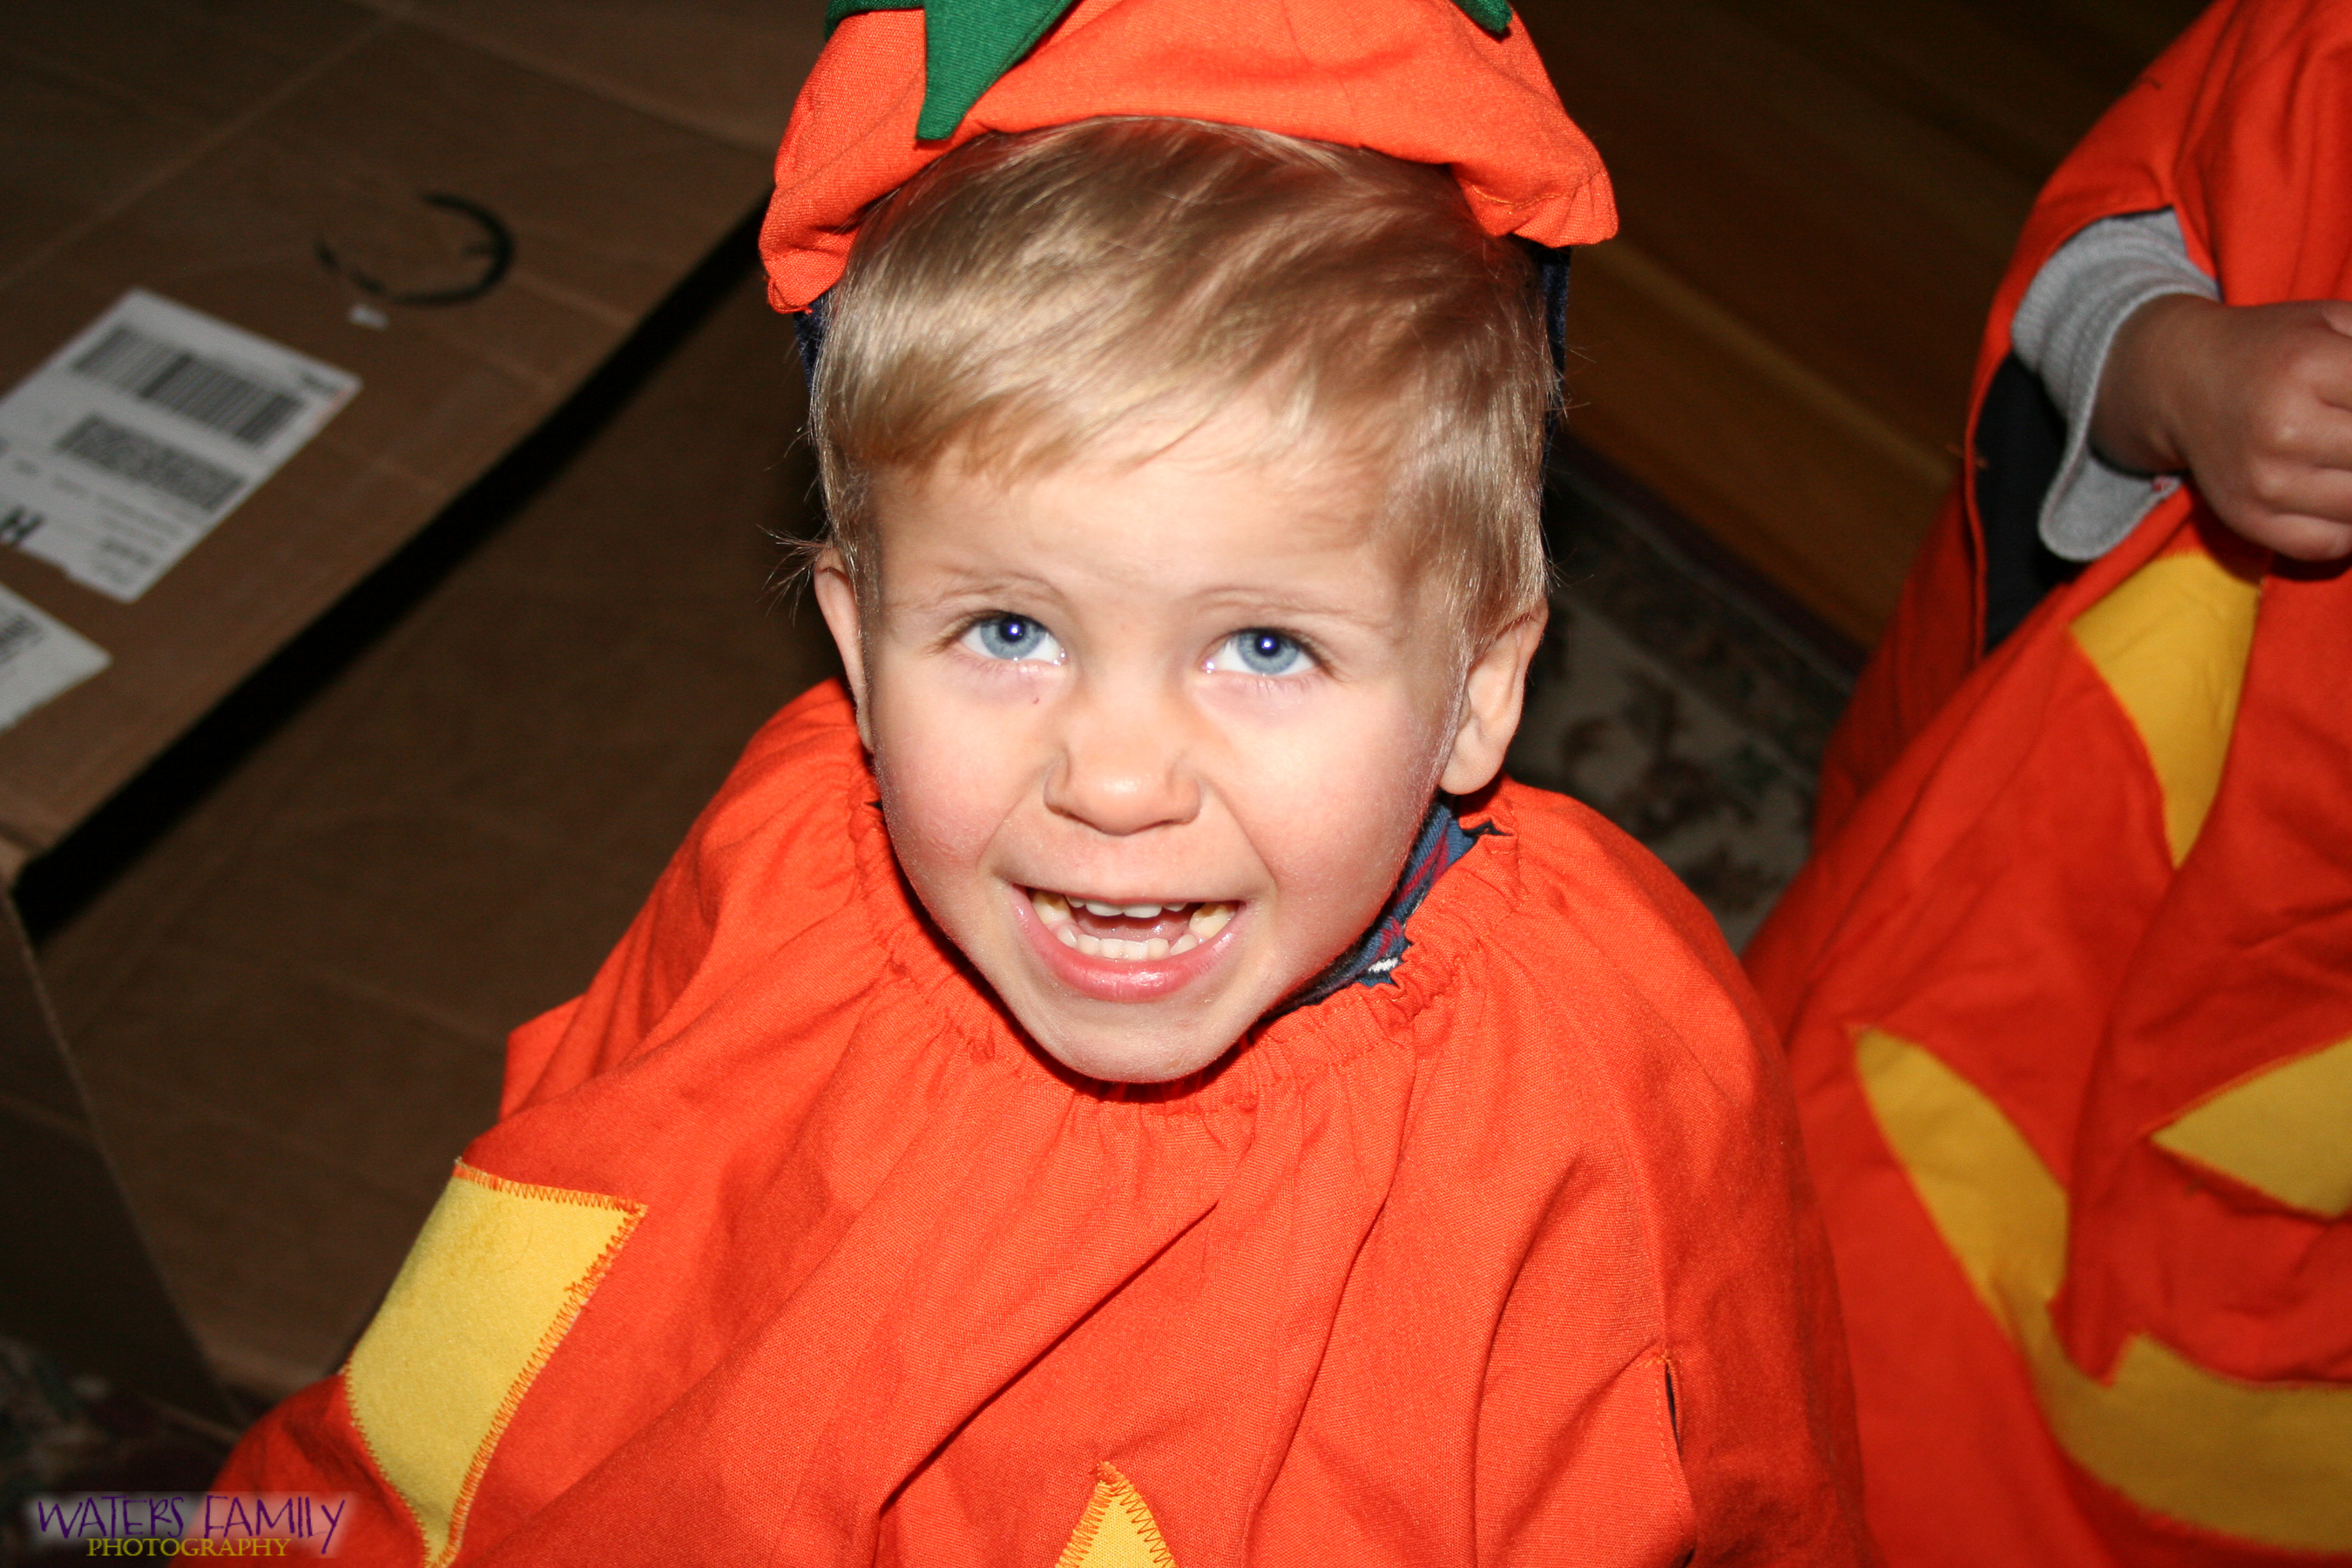 Alex is excited about his pumpkin costume